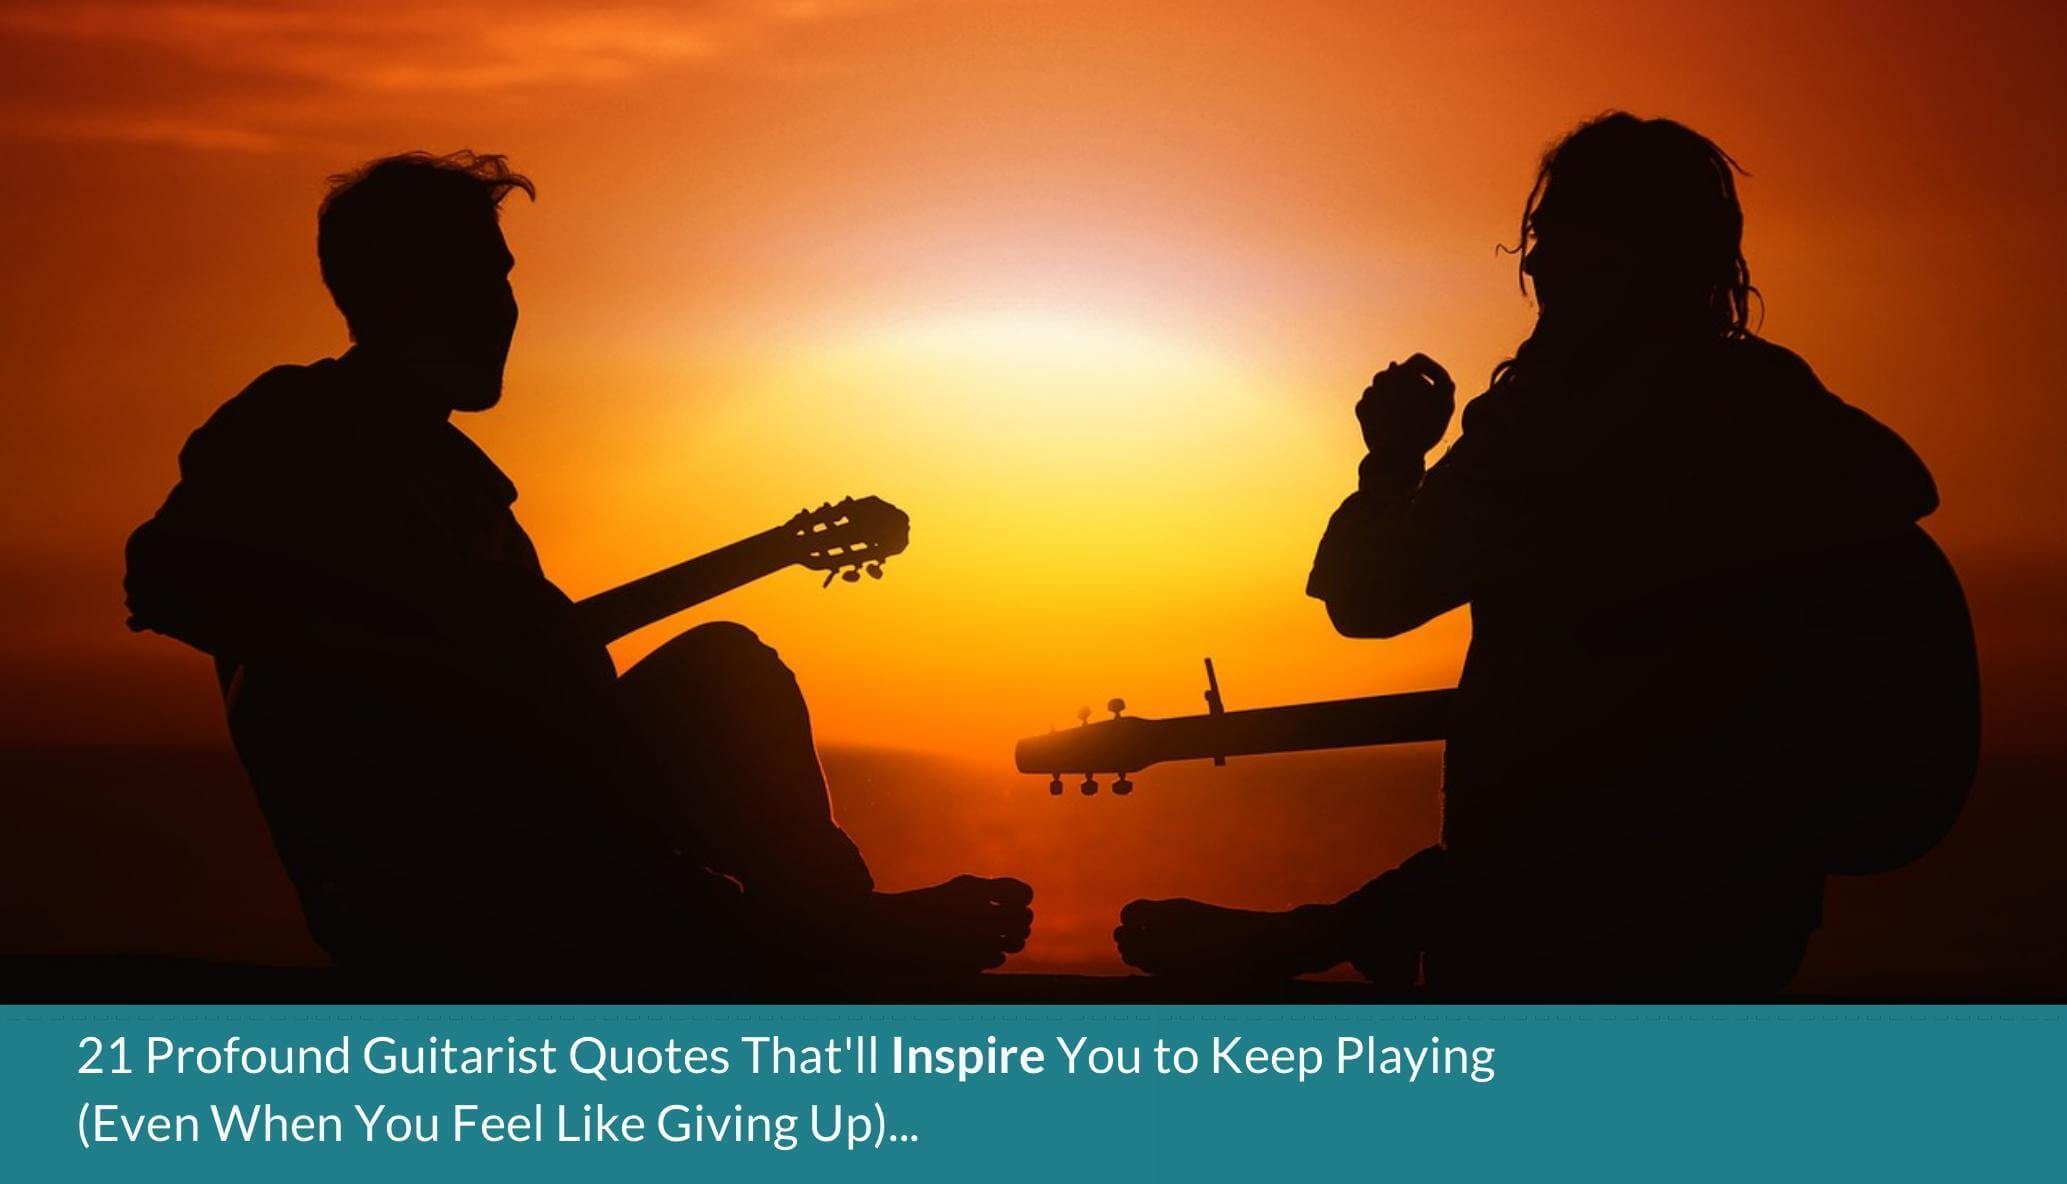 21 Guitar God Quotes Thatll Inspire You Even When U Feel Like Caving In